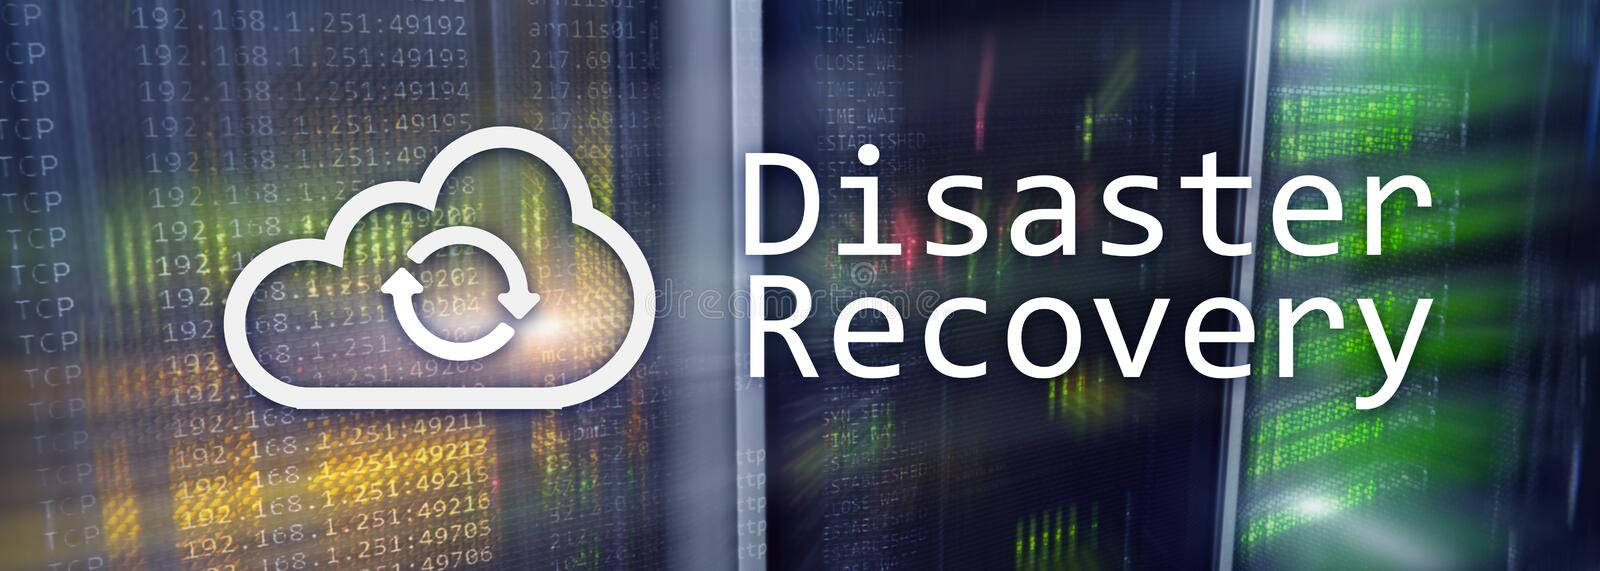 DIsaster recovery. Data loss prevention. Server room on background.  royalty free illustration